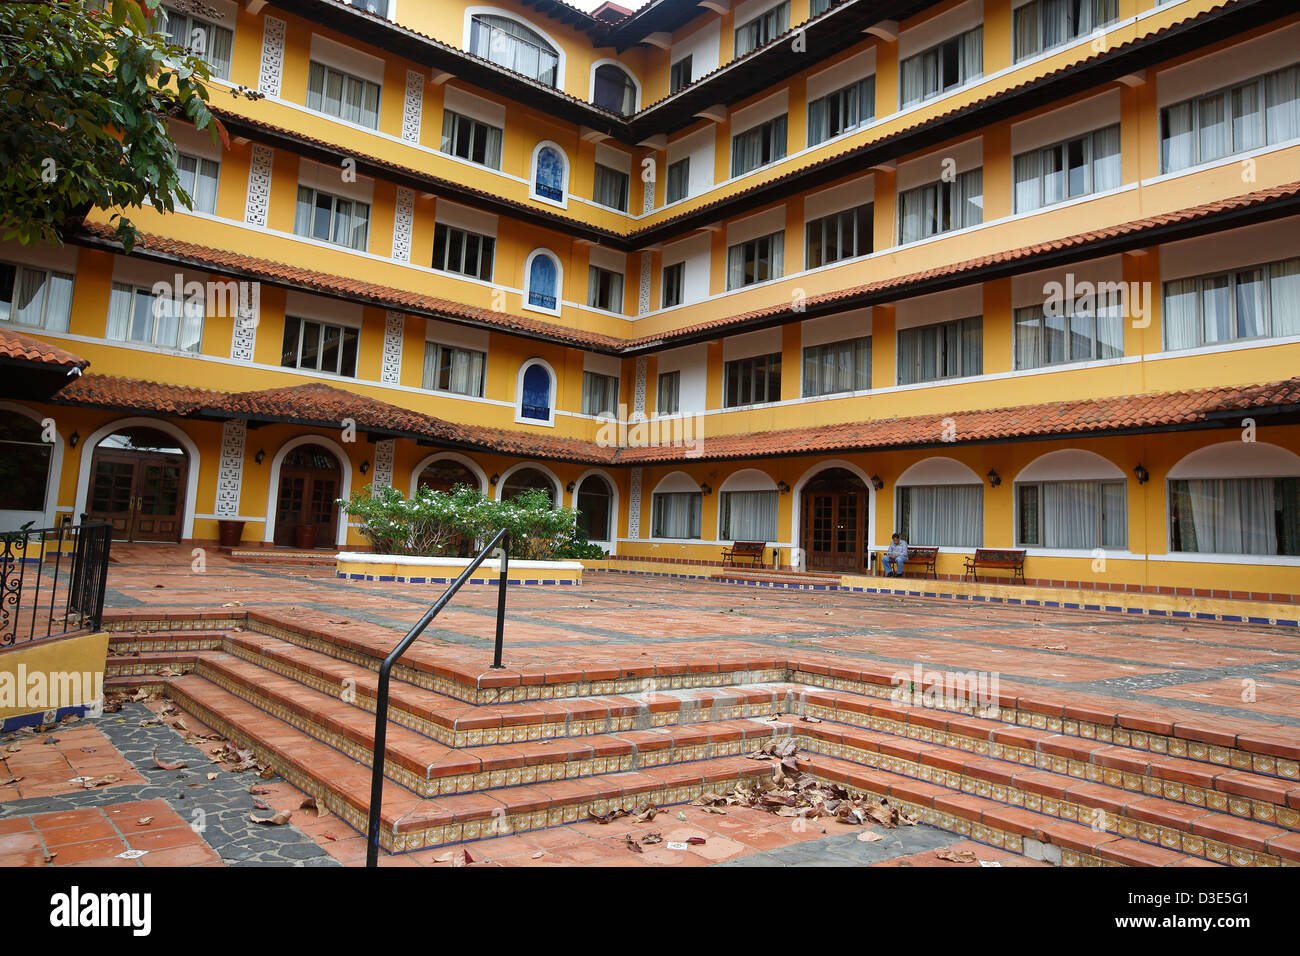 Former School of the Americas in the Canal Zone, now hotel Melia Panama Canal - Stock Image